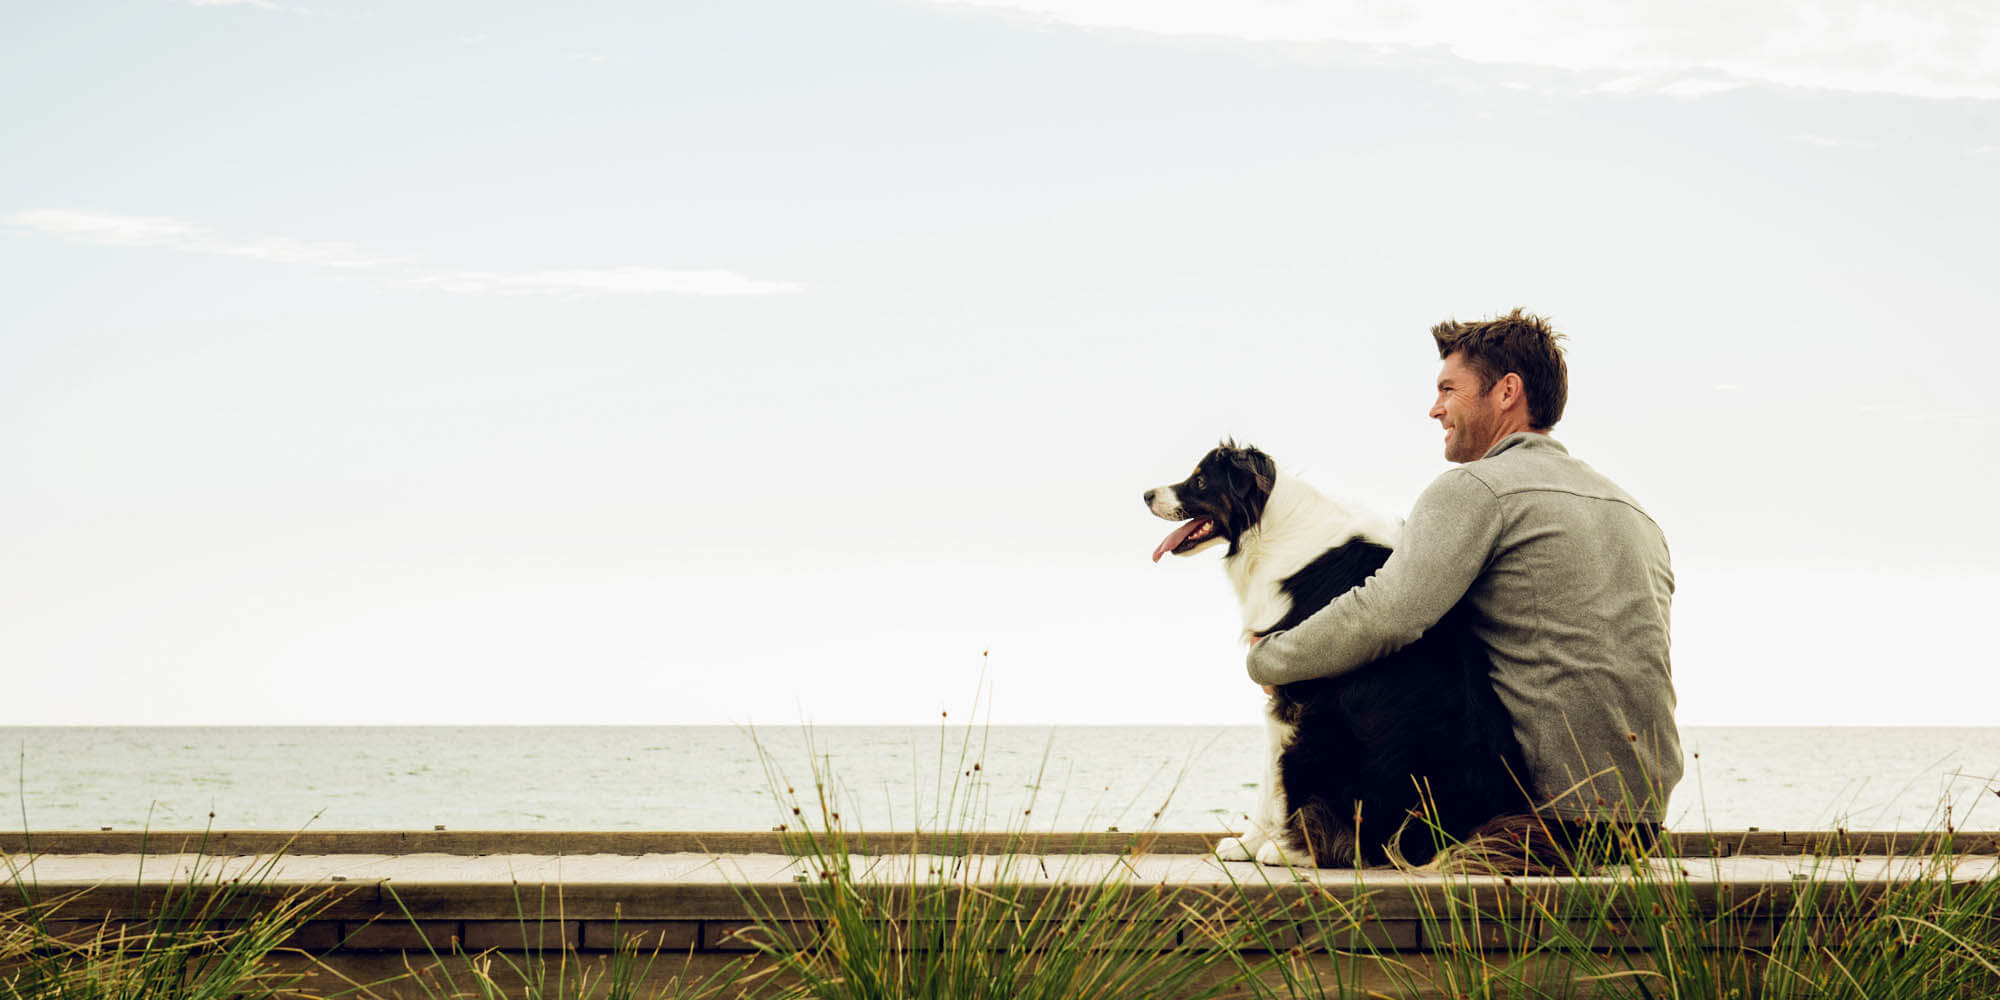 Man and dog relaxing on coastline